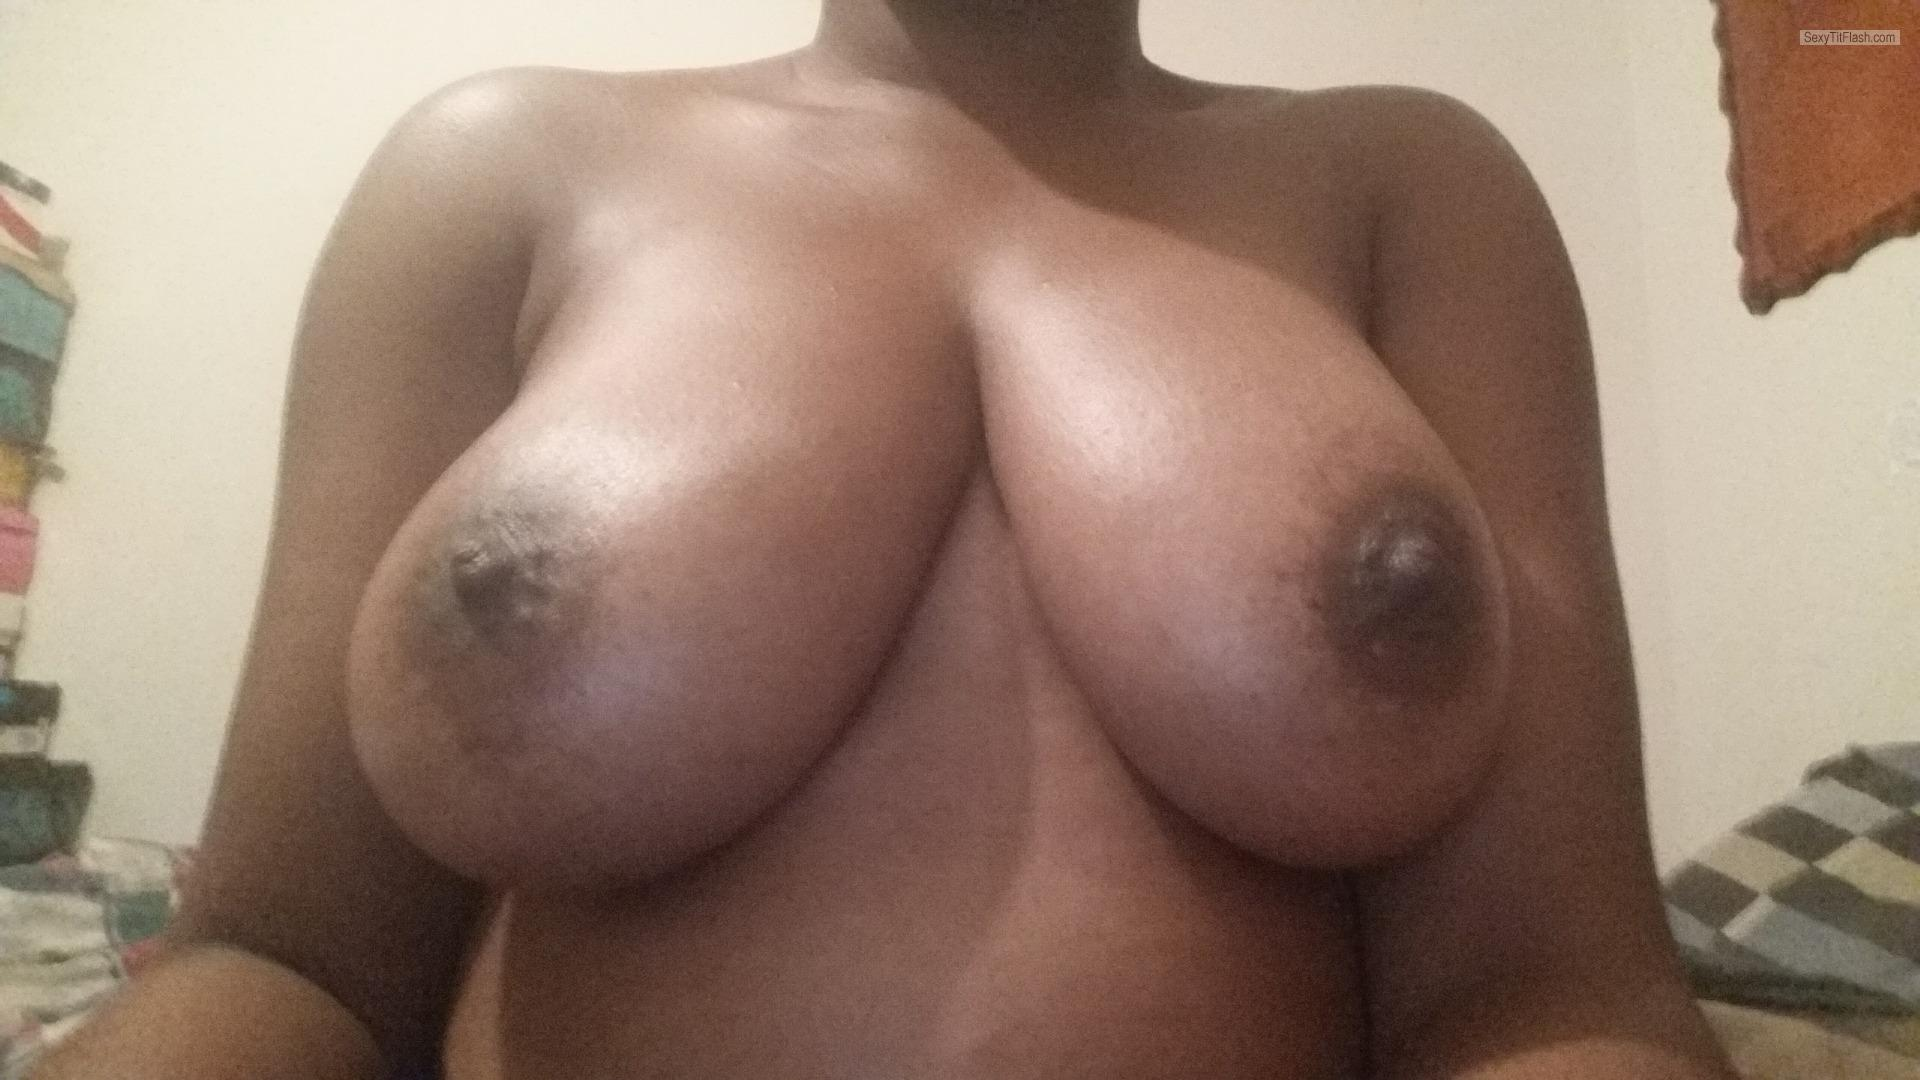 My Big Tits Selfie by Jedora